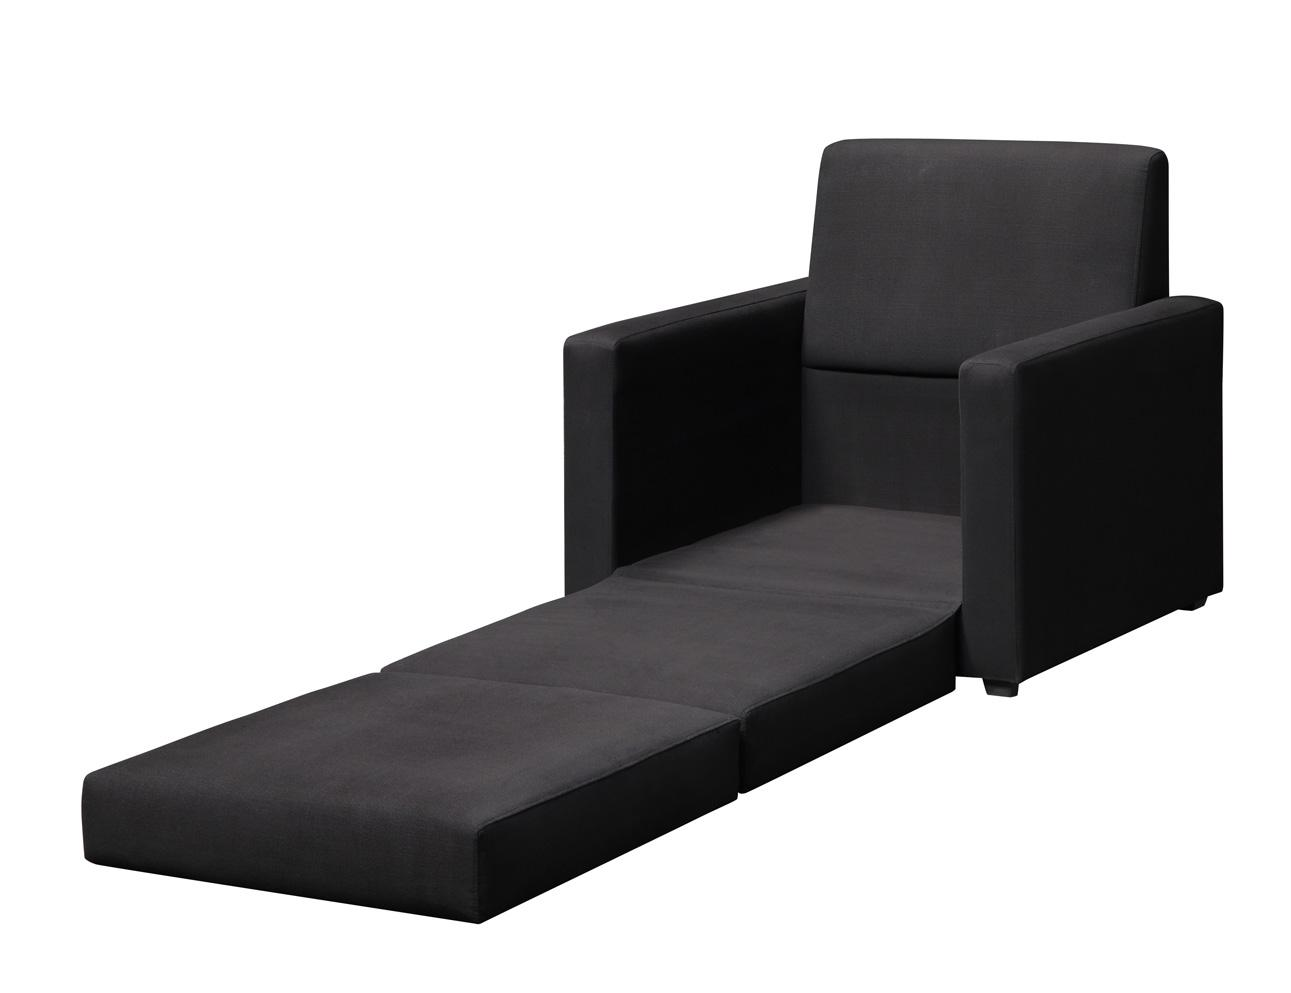 compact and multifunctional black Single Sleeper Chair which can function  as day bed for living room